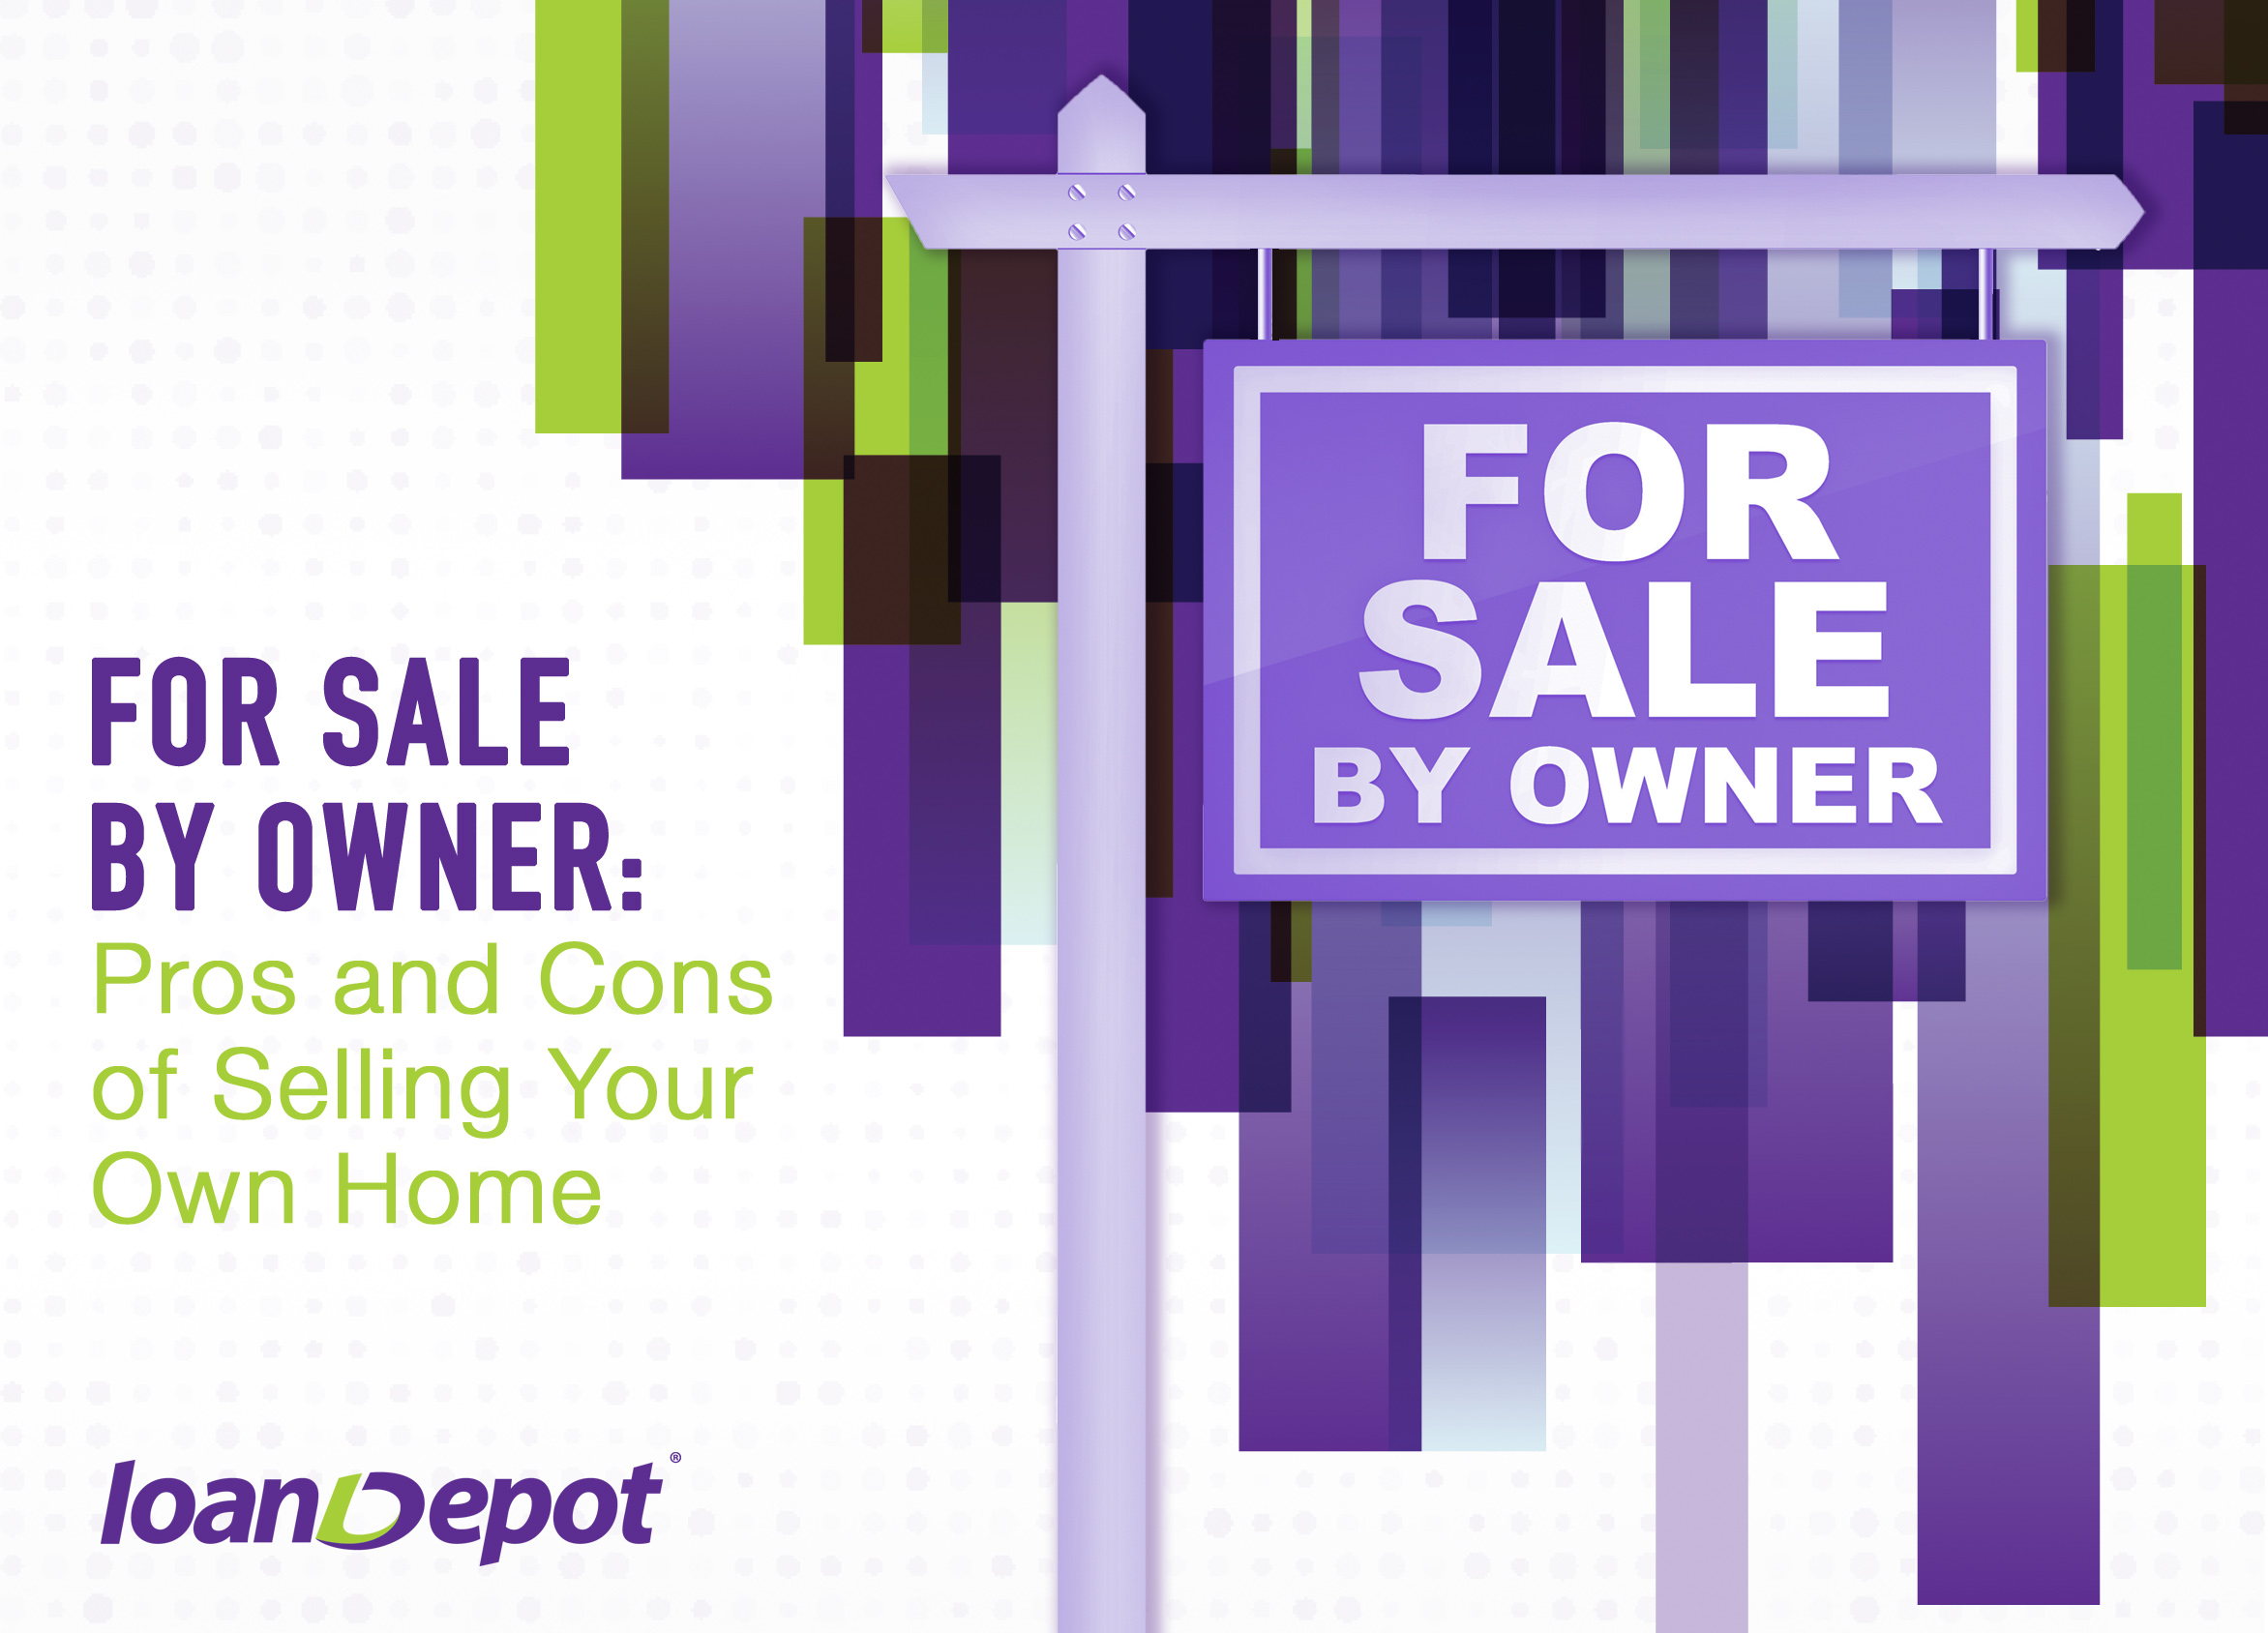 For Sale by Owner: Pros and Cons of Selling Your Own Home